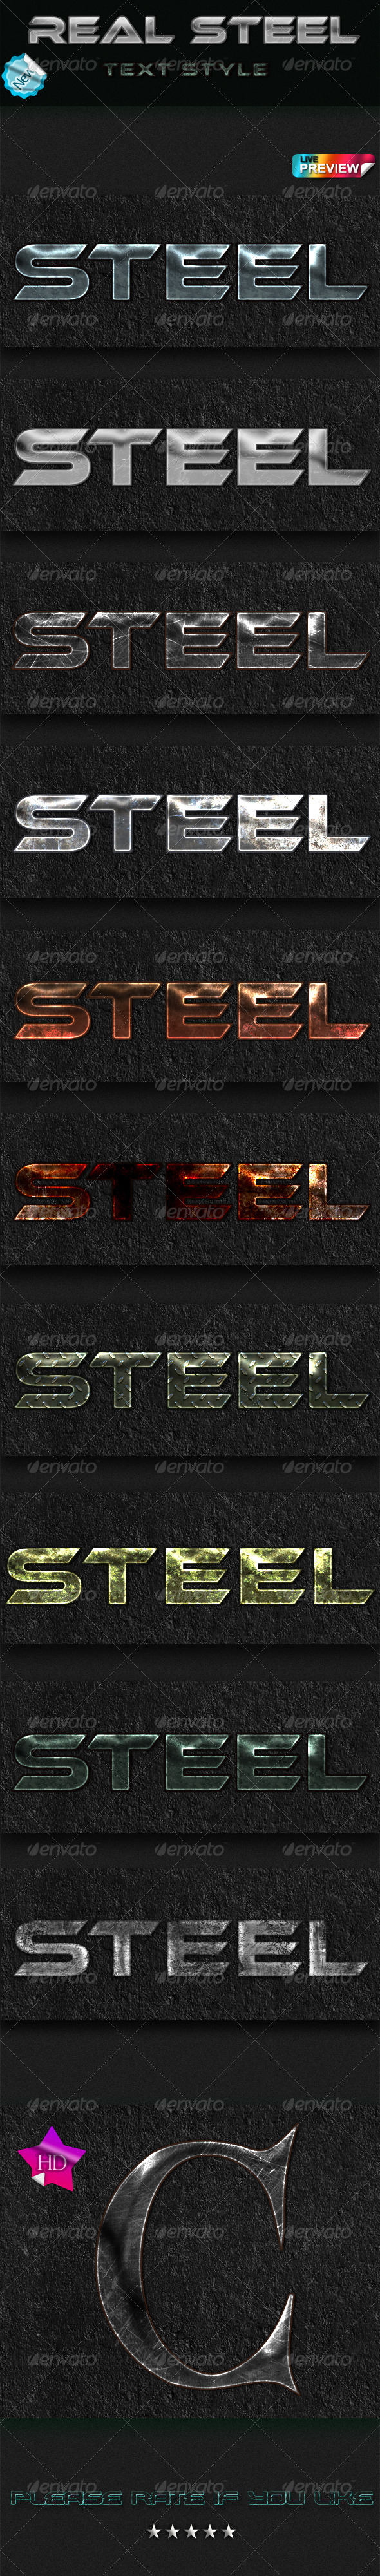 GraphicRiver Real Steel Text Style 6915844